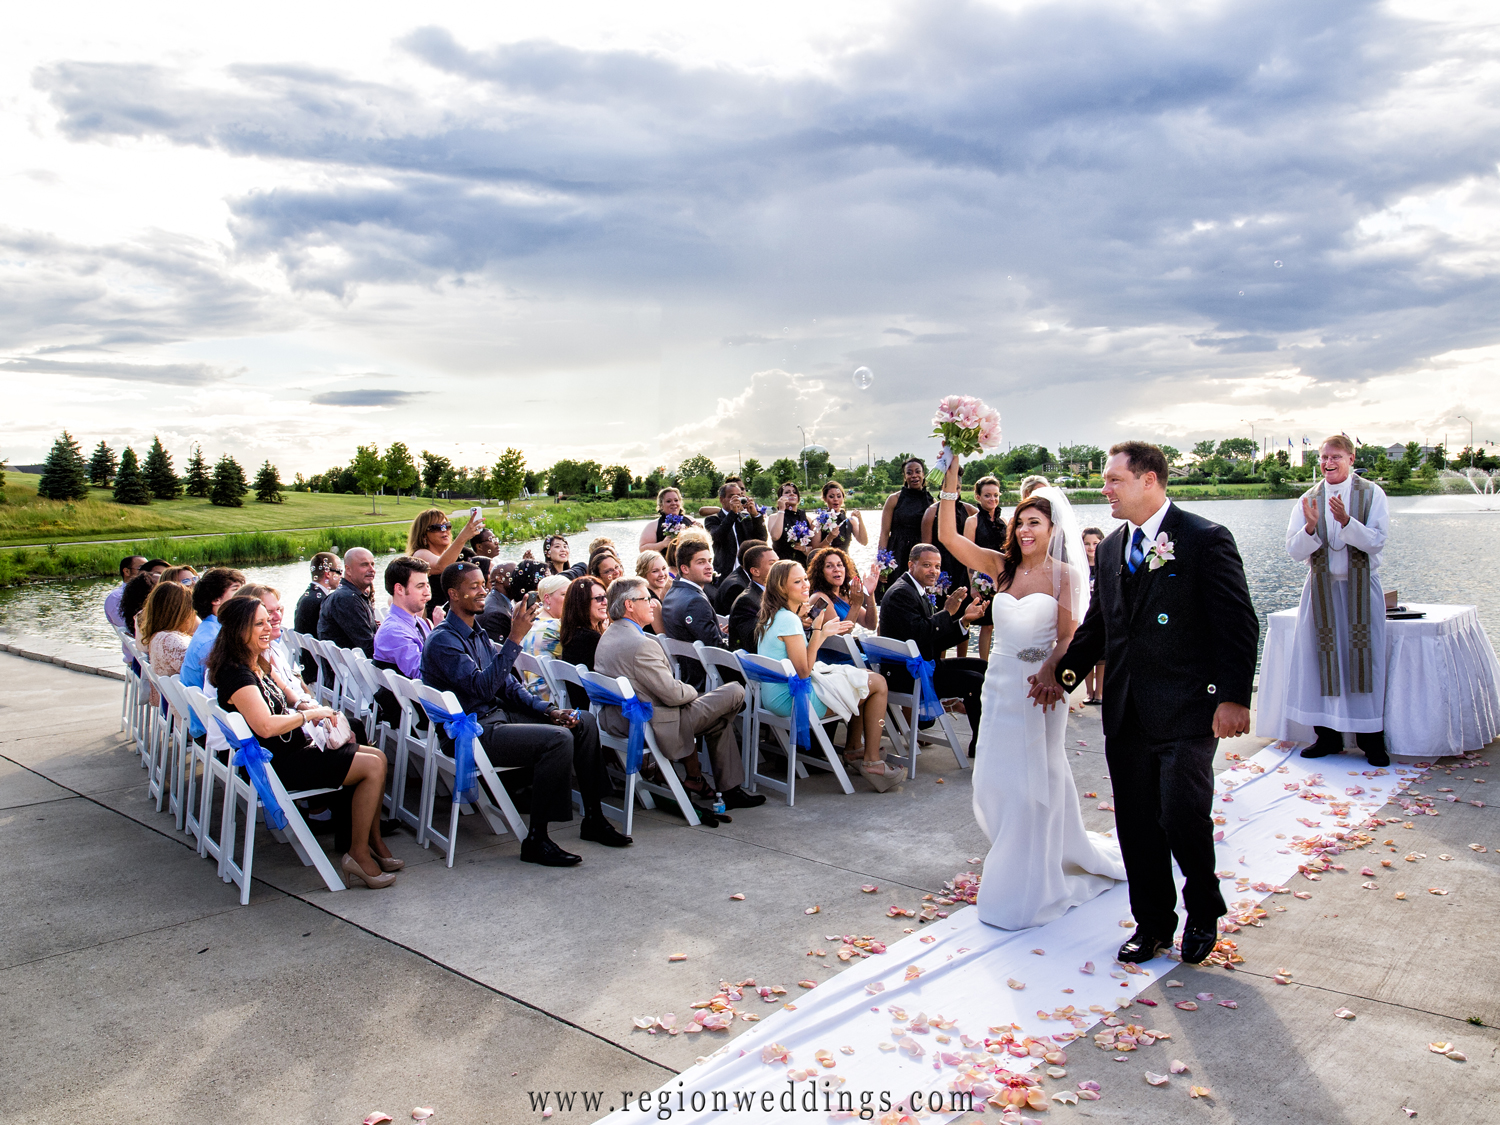 A just married couple waves to friends and family after their summer wedding in Munster, Indiana.